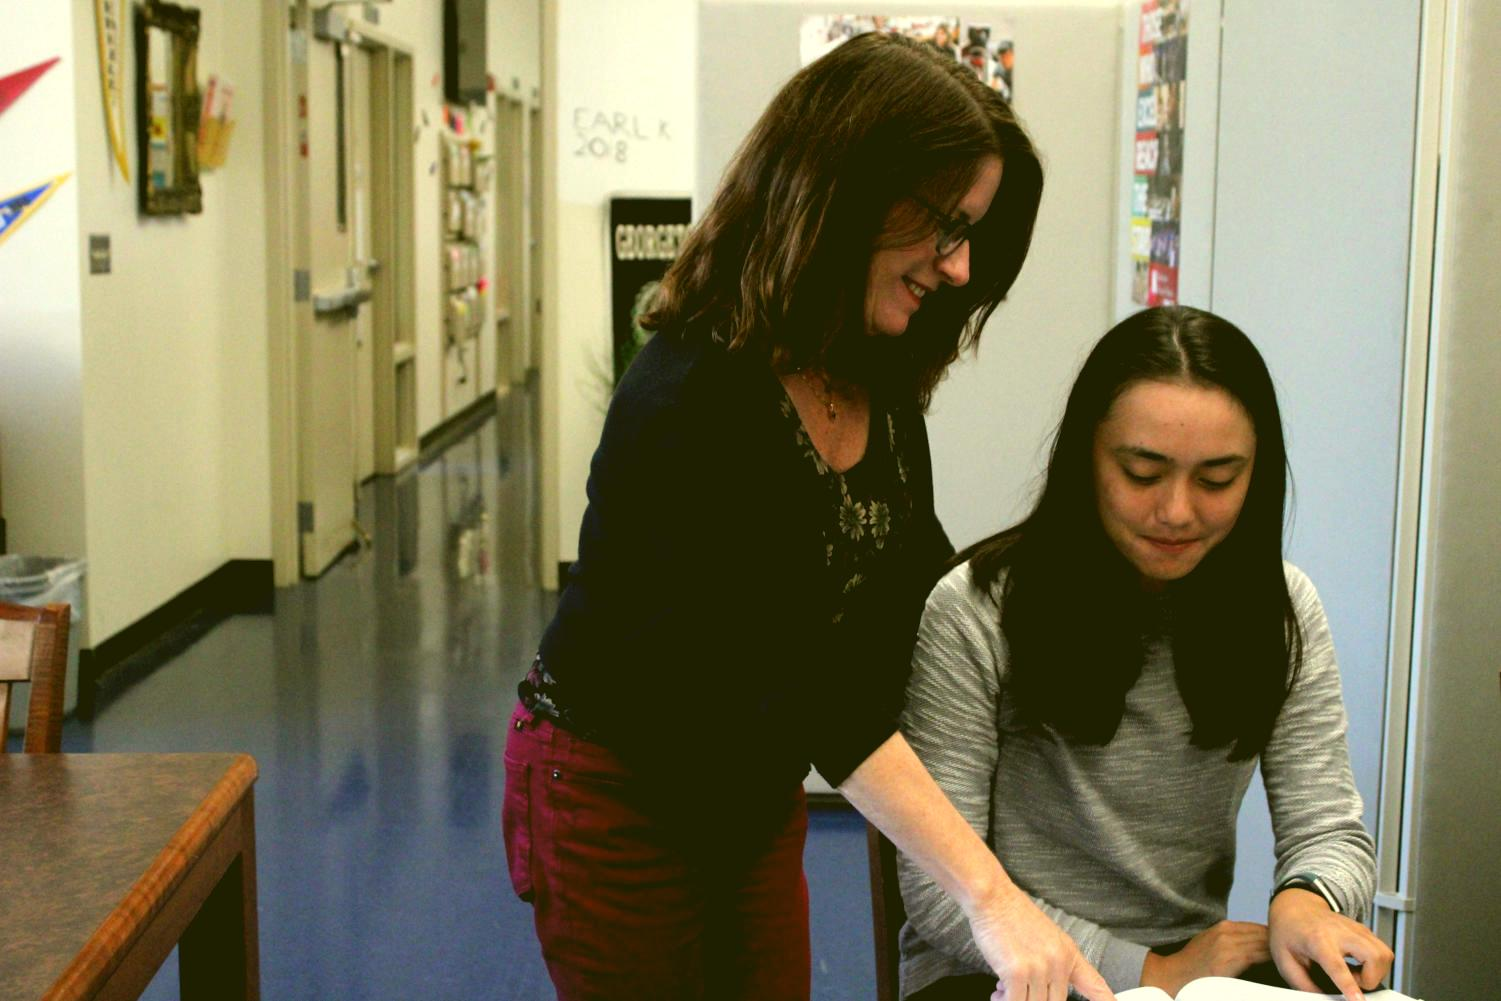 Nina Rasor, a College and Career Center assistant, helps Lilly Gittoes, a senior, with her work.